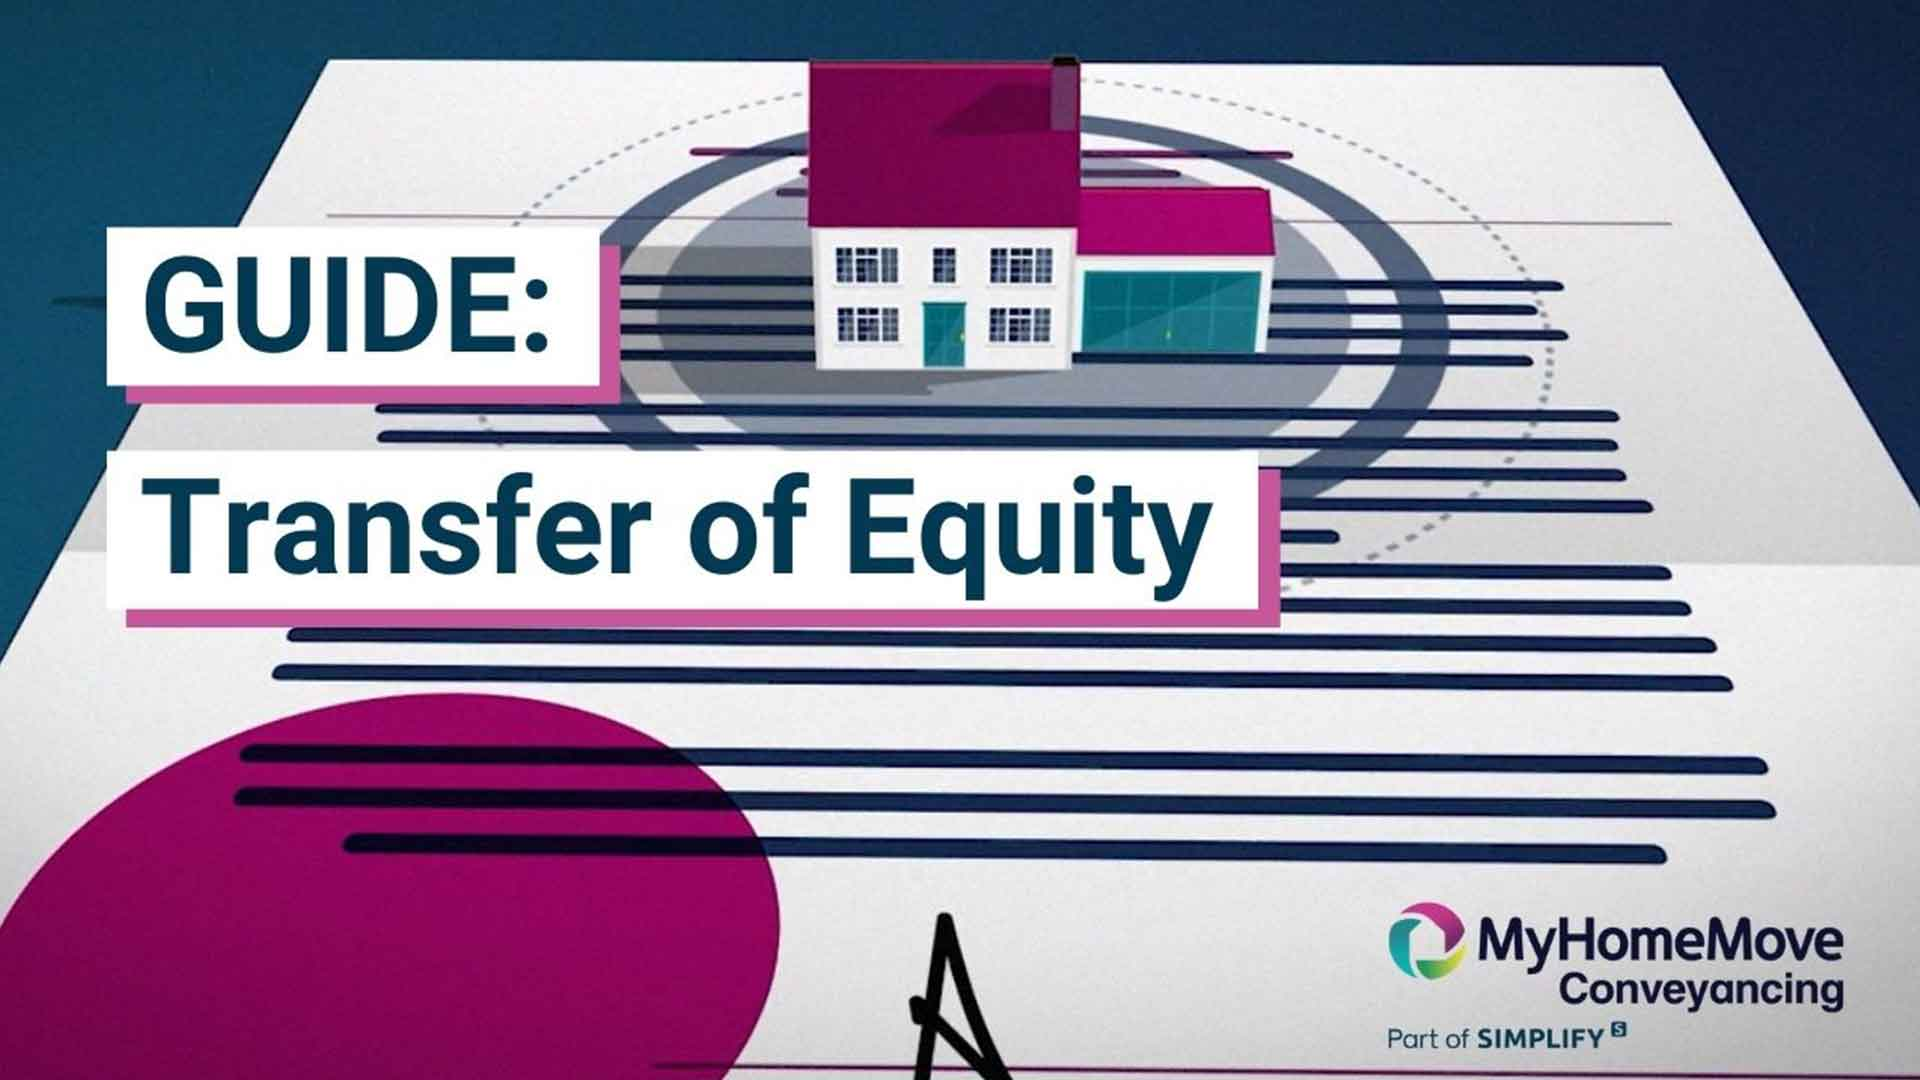 Transfer of Equity